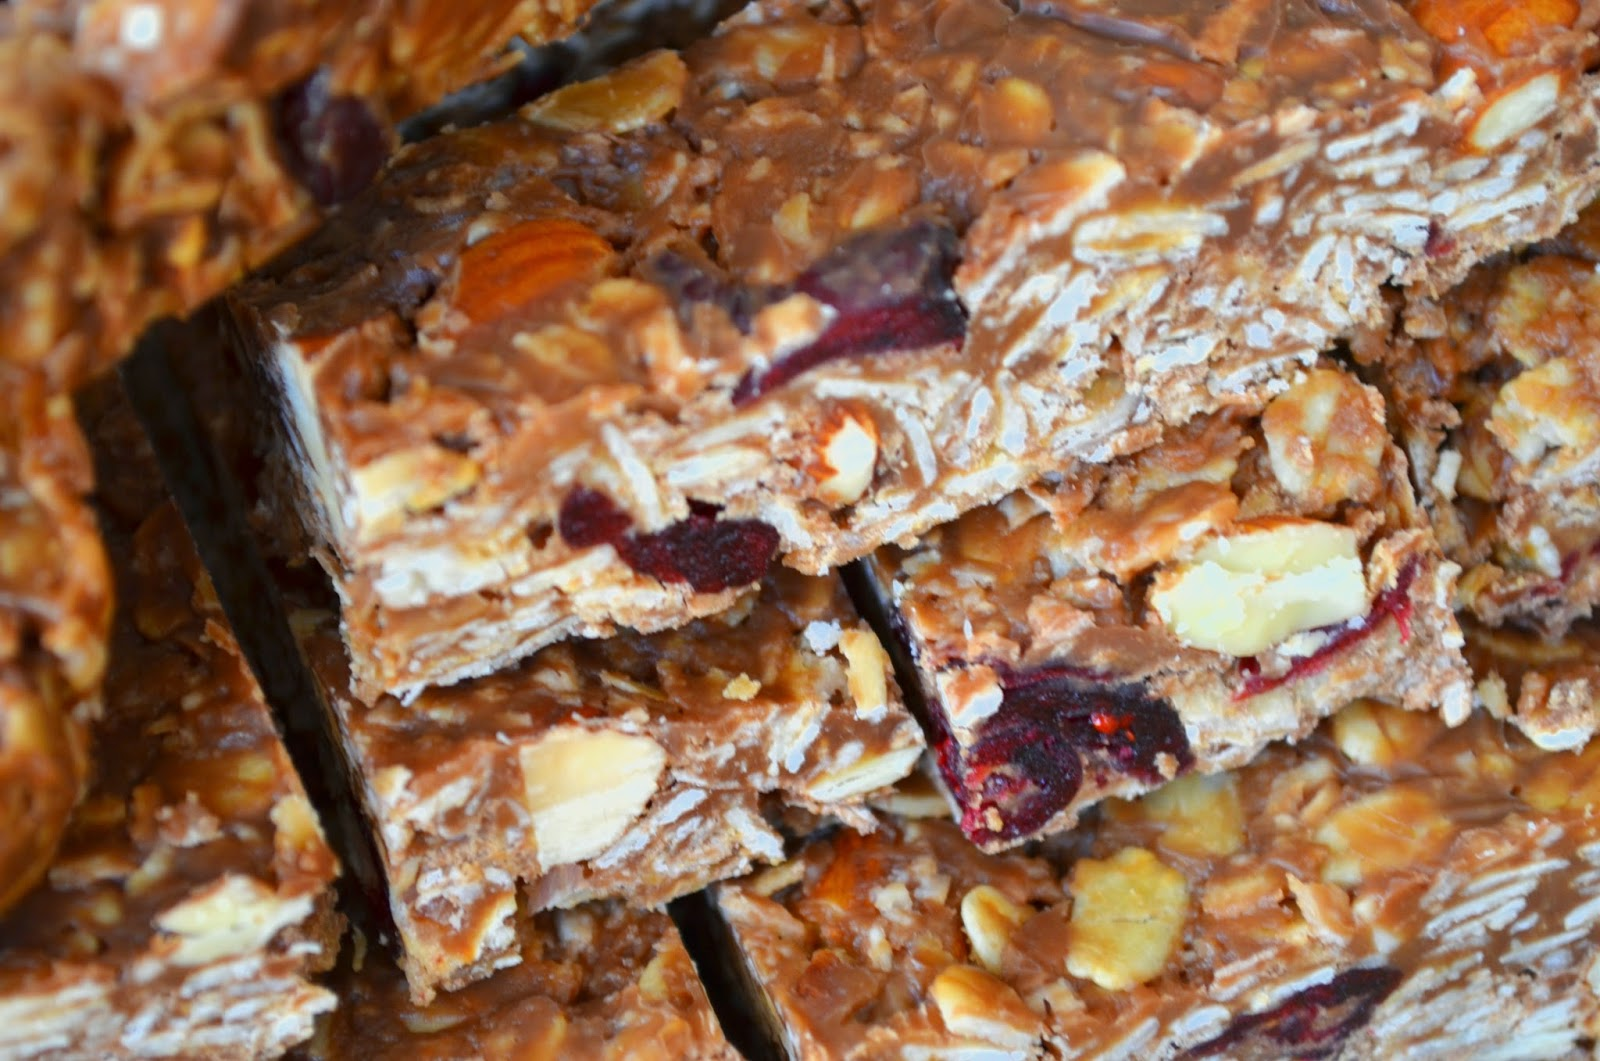 Almond and cranberry muesli bars